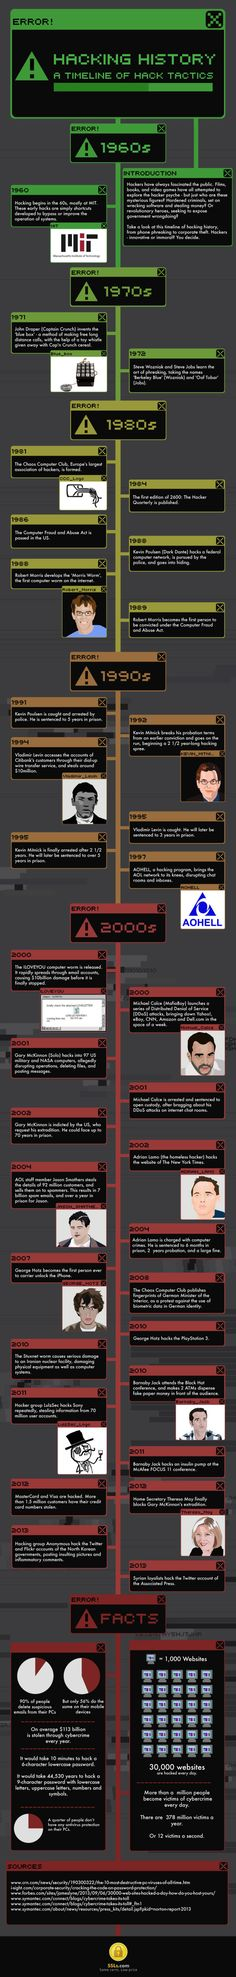 The Hacking History Timeline | #Infographic repinned by @Piktochart | Create yours at www.piktochart.com